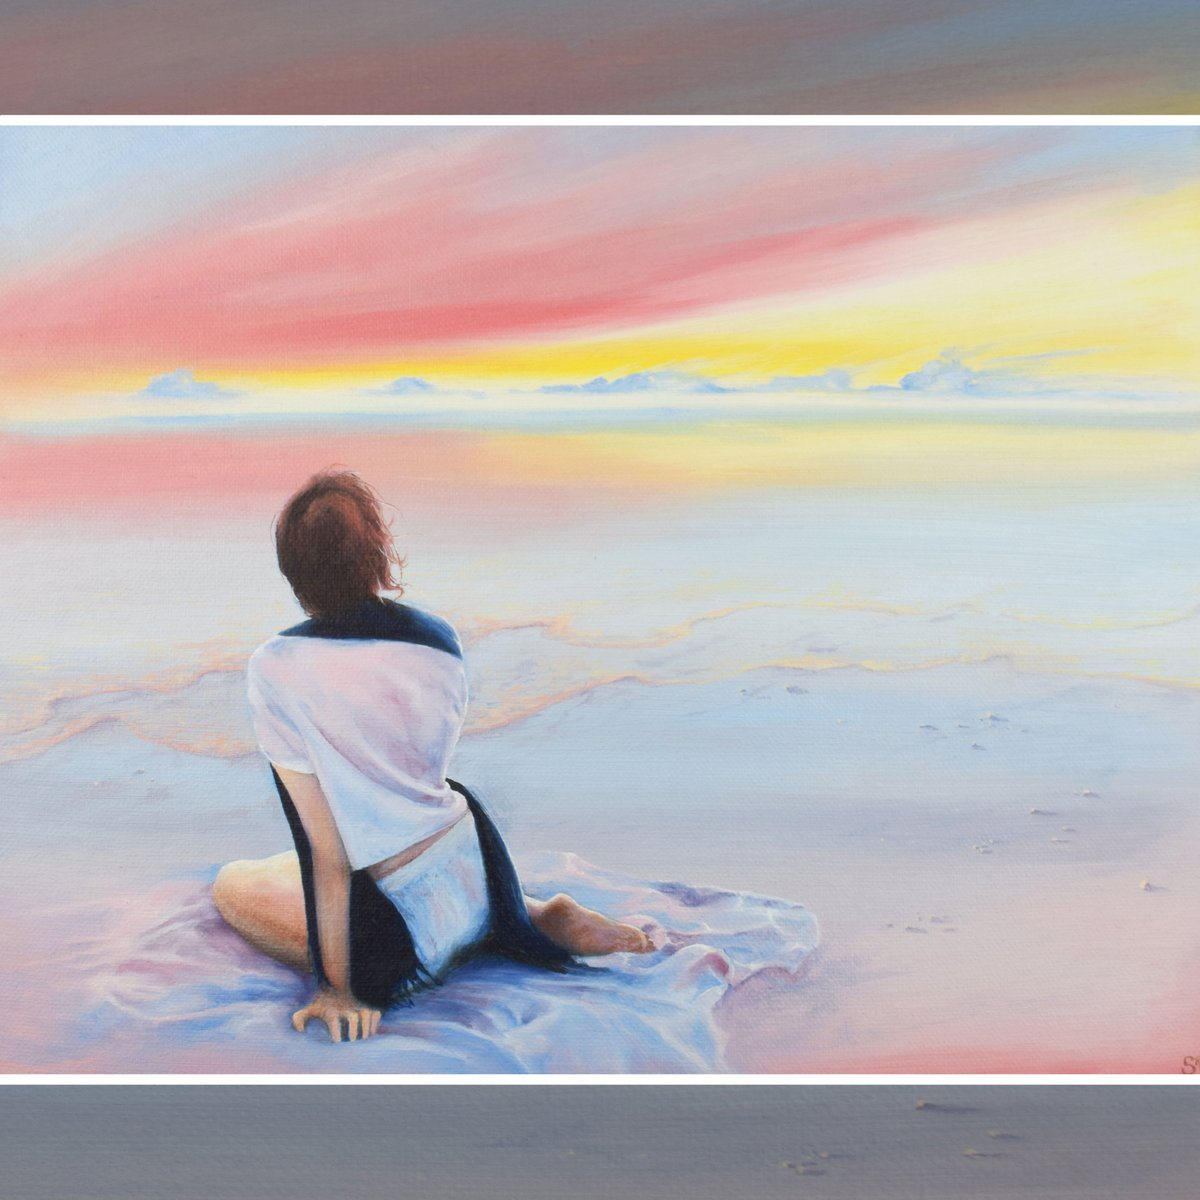 See the #creation of my last #oilpainting &quot;Contemplation&quot; on my #YouTube #Channel now...  https://www. youtube.com/channel/UCFbFm I7MOHU2v6I3igC82jw &nbsp; …  ...do consider subscribing if you like what you see, there&#39;s loads more great #painting videos on there with new content every week. #HappySunday everyone <br>http://pic.twitter.com/0CTF9xeAtO